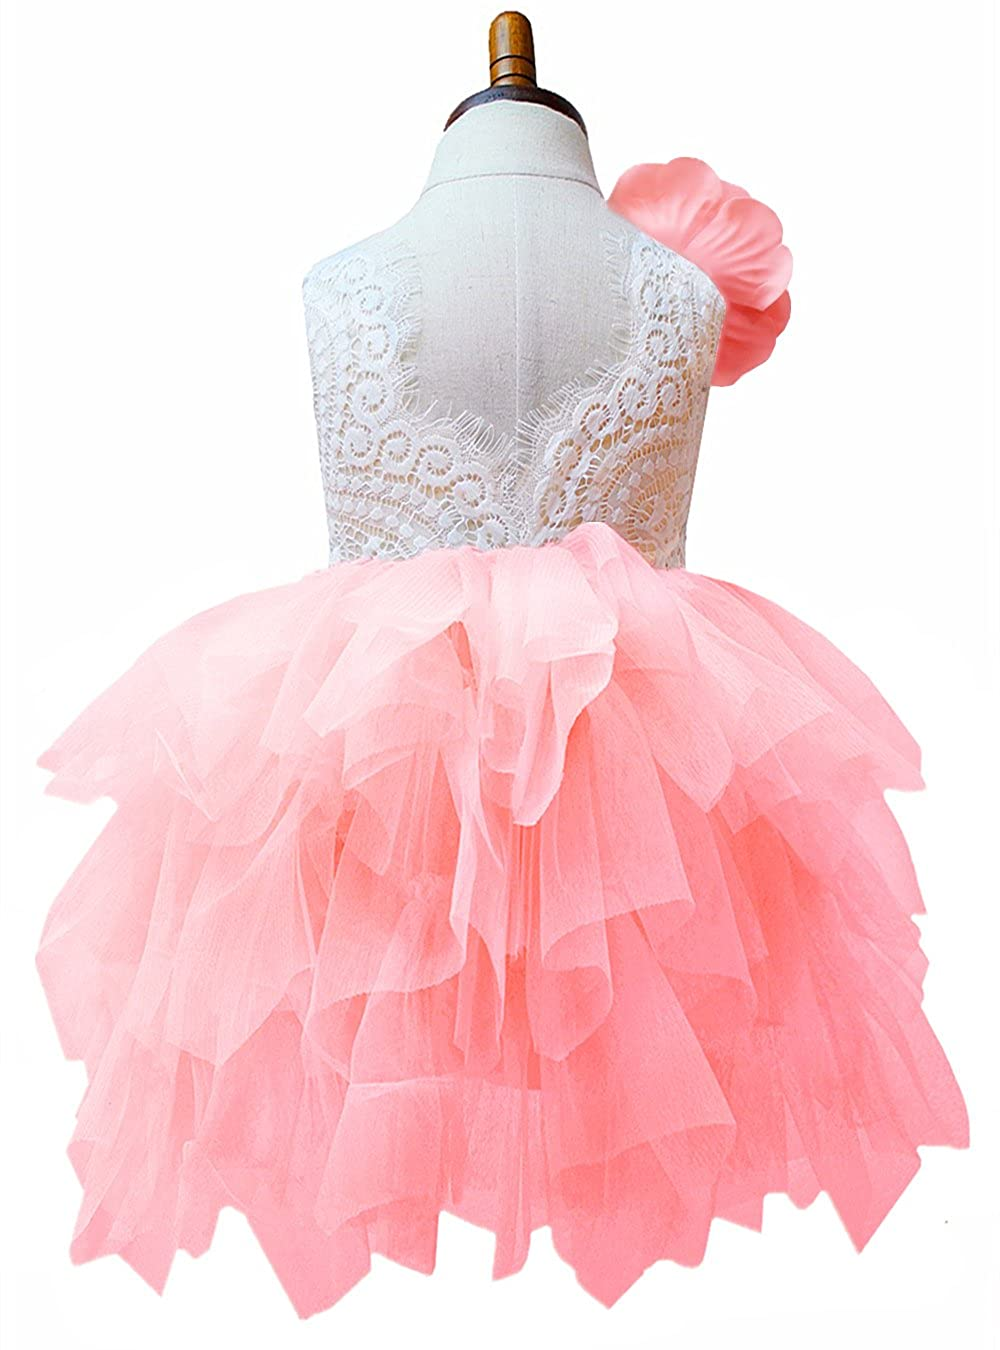 b1c343f58aa Amazon.com  2Bunnies Girl Lace Back Flower Girl Dresses (Pink with  Detachable Flower